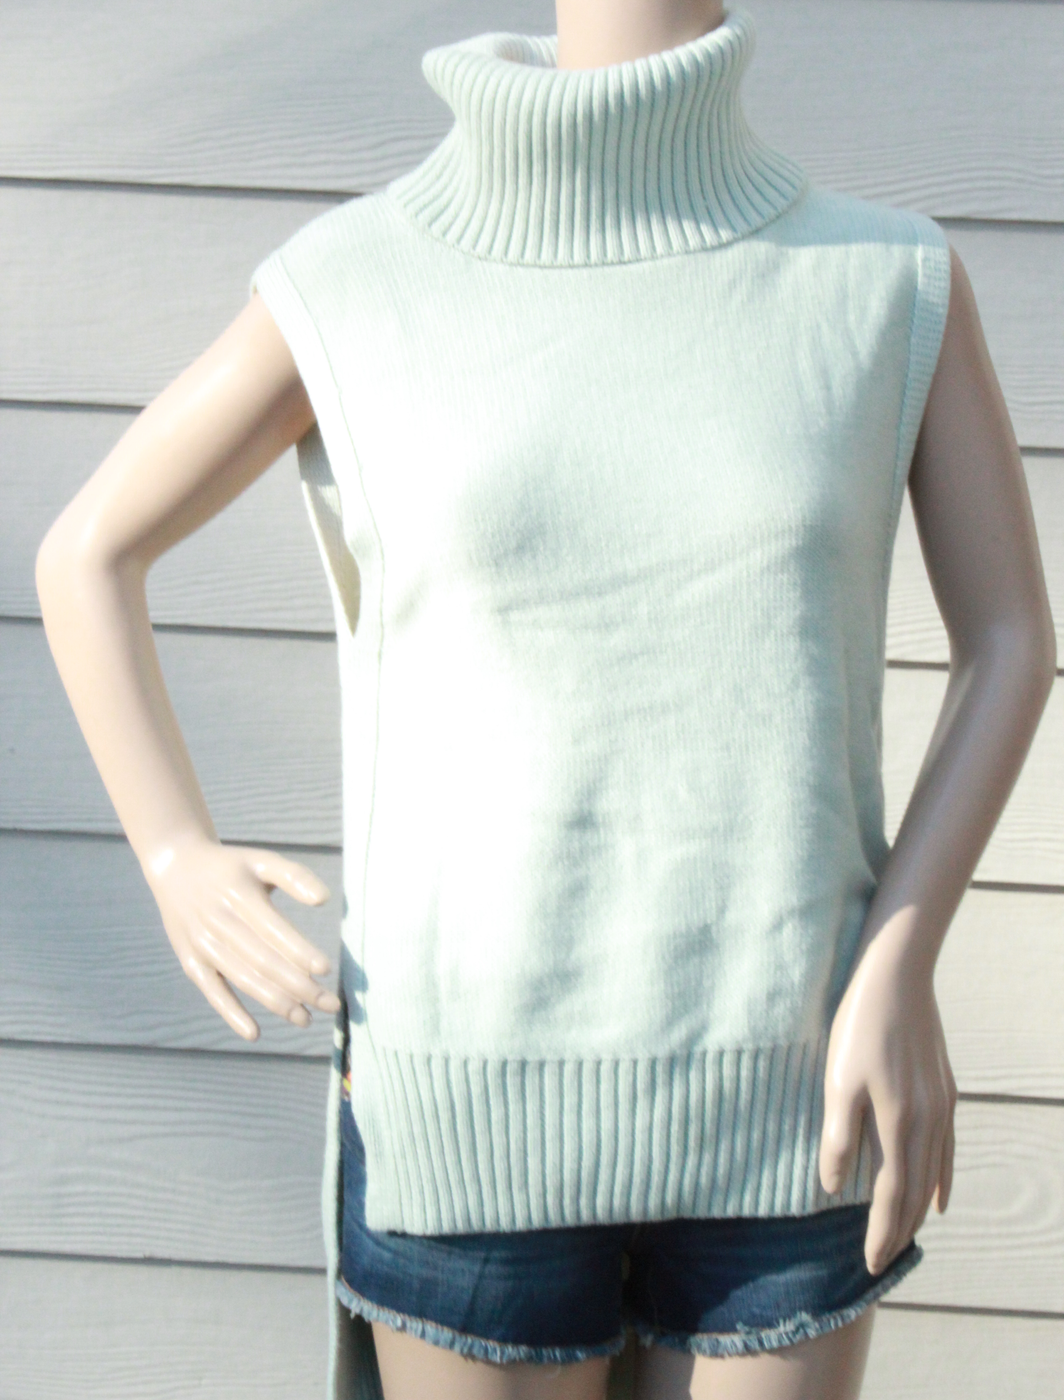 e0a9d148b8b Banana Republic Sleeveless Turtleneck Sweater